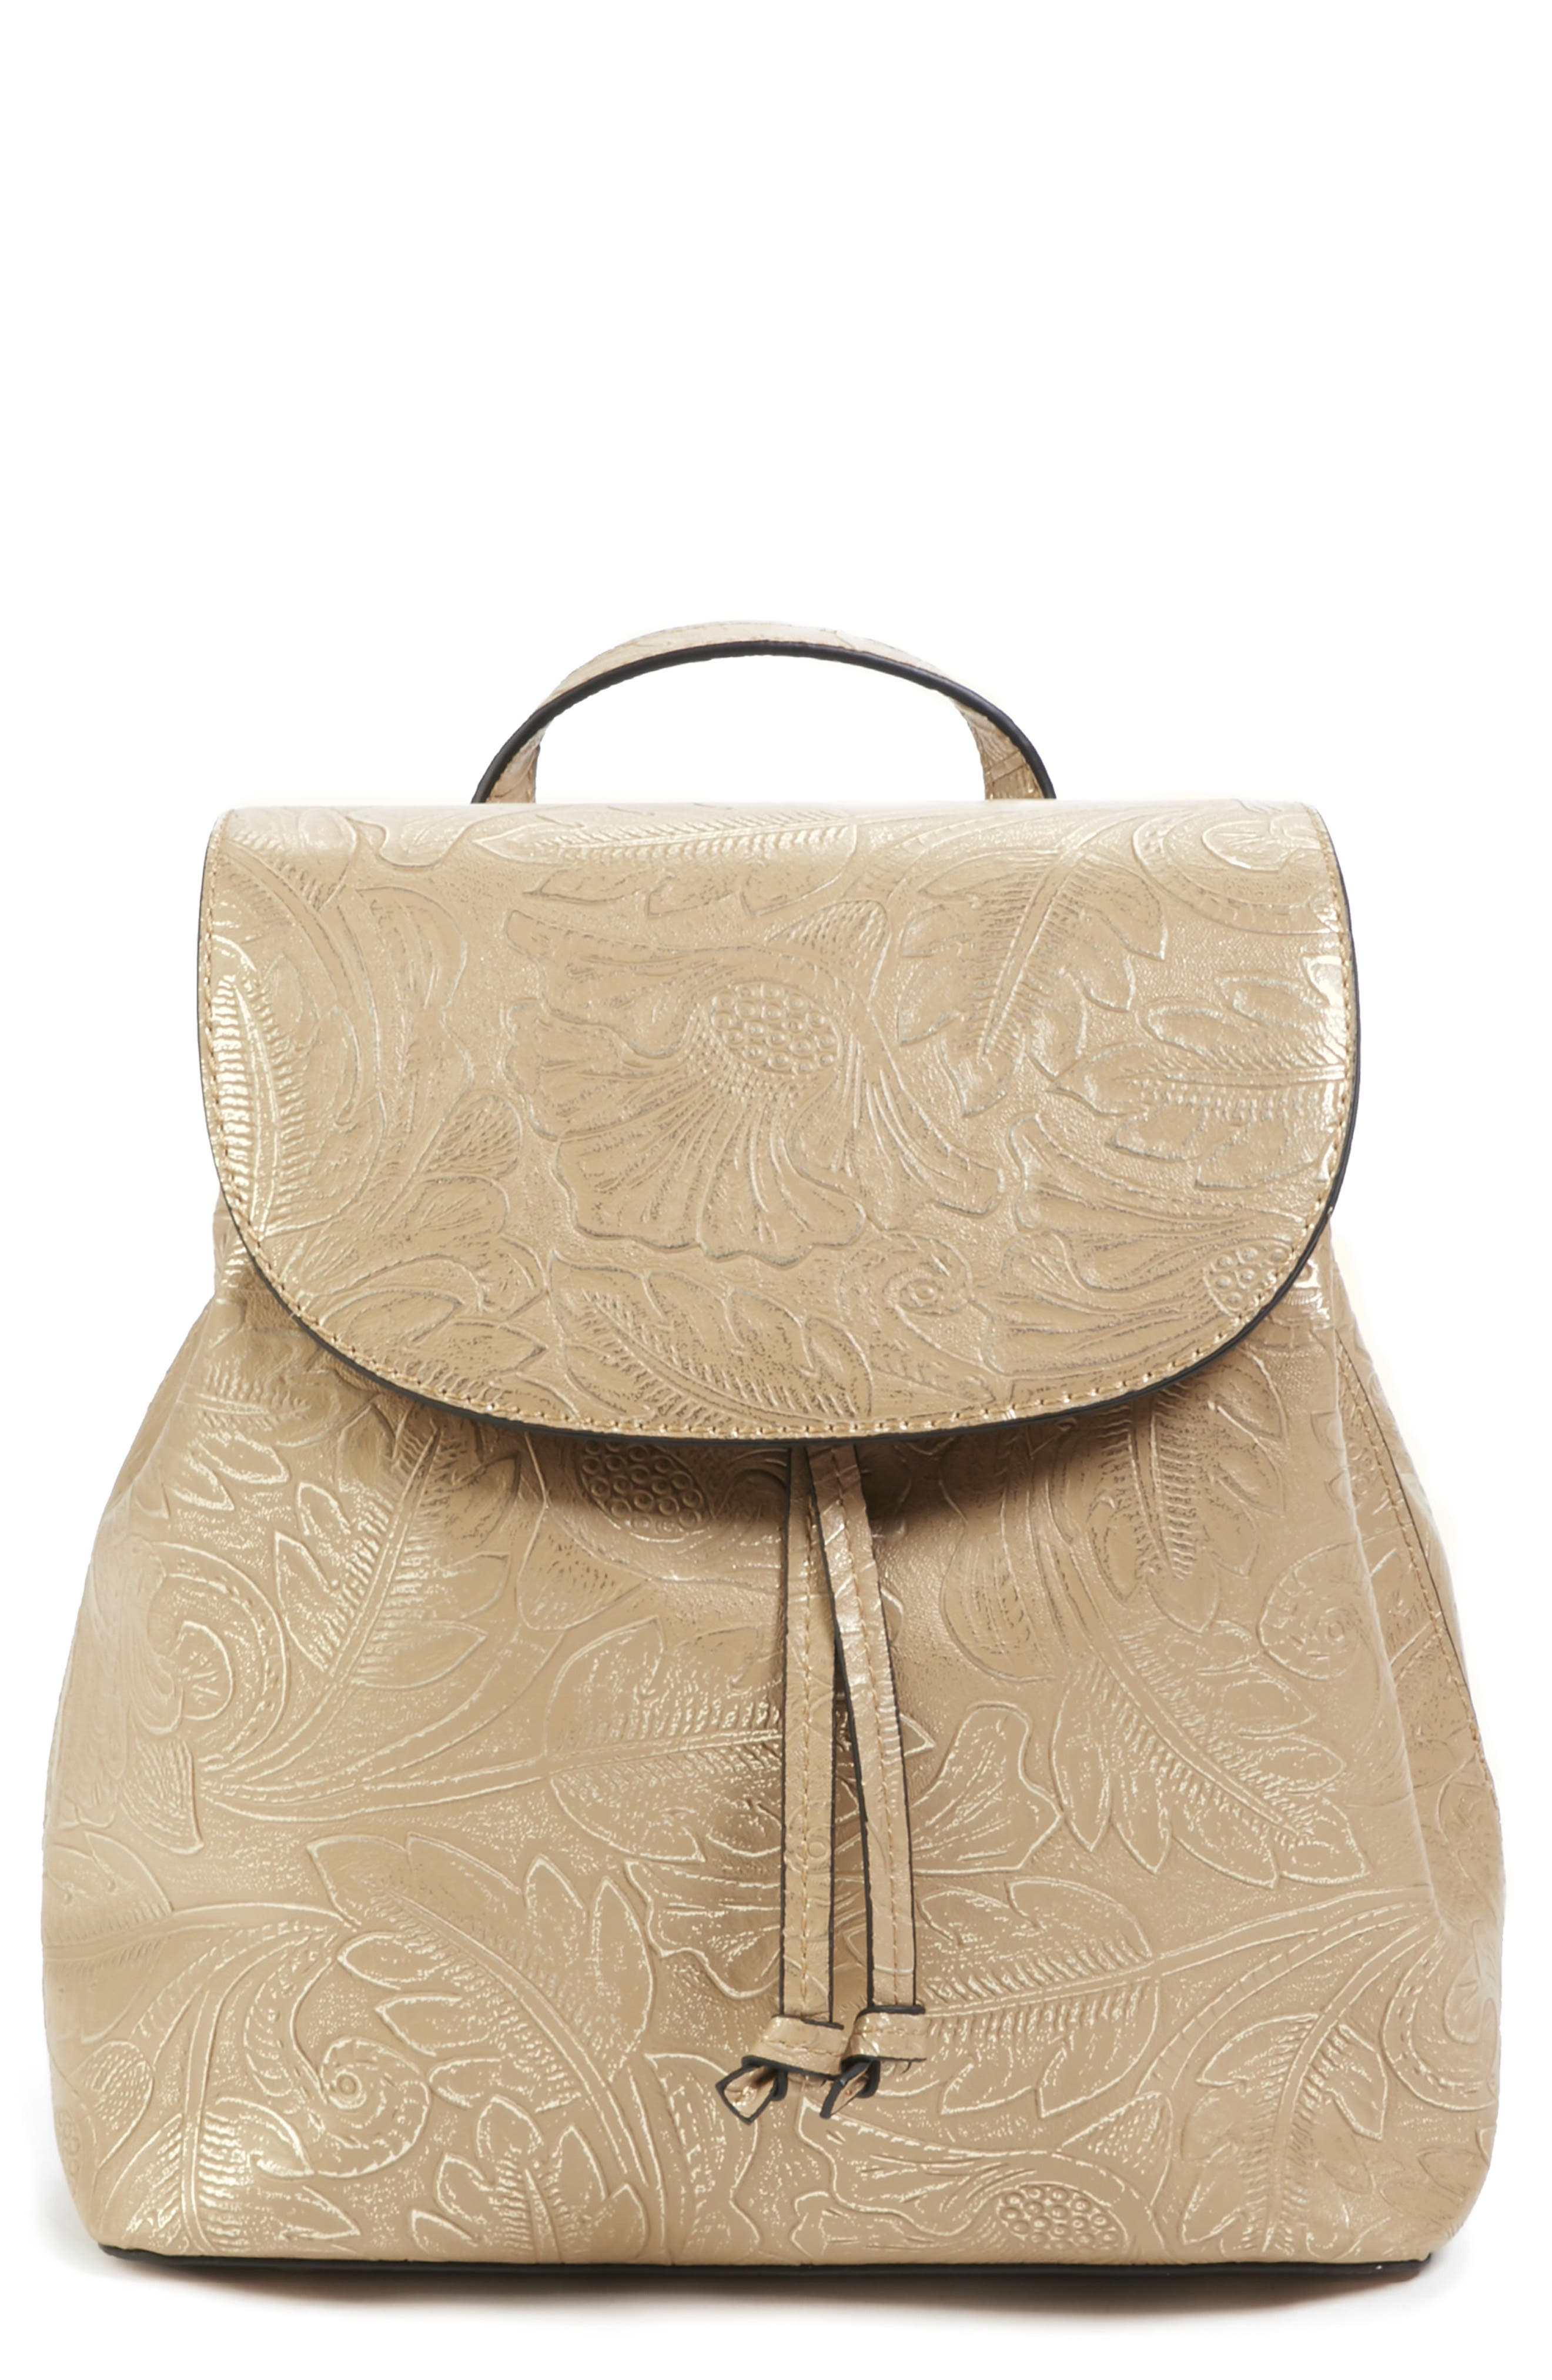 Sole Society Hawna Faux Leather Backpack - Beige